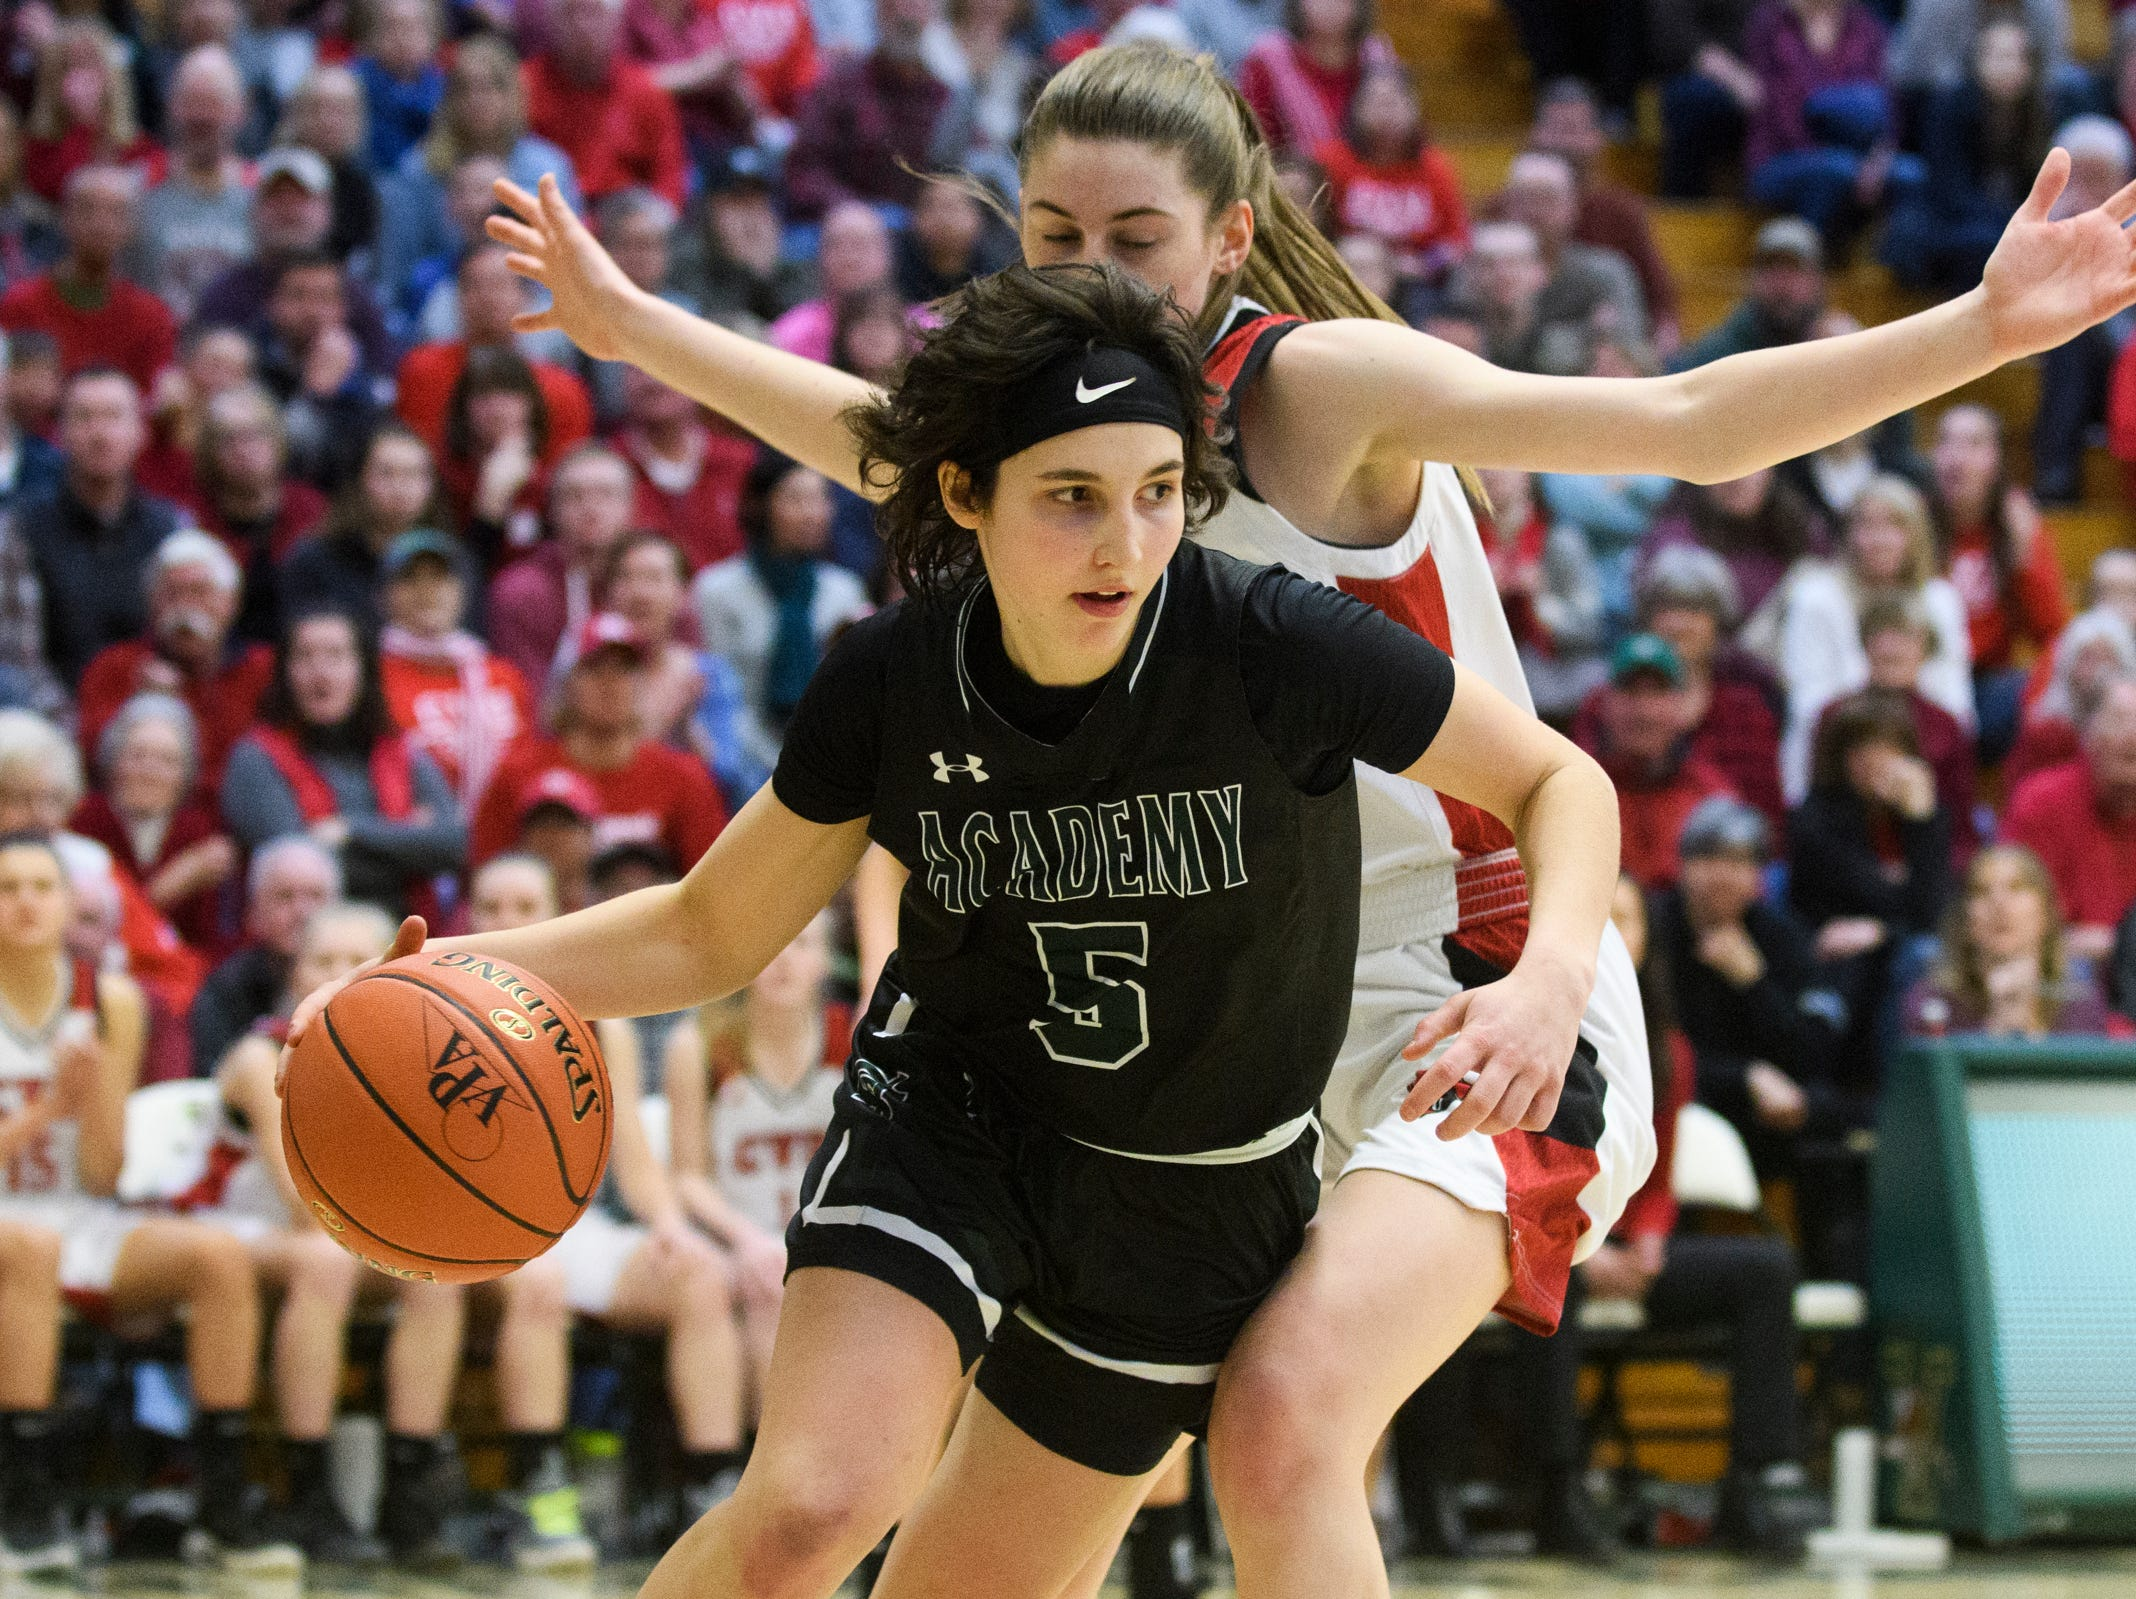 St. Johnsbury's Sadie Stetson (5) drives to the hoop  during the division I girls basketball championship basketball game between the St. Johnsbury Hilltoppers and the Champlain Valley Union Redhawks at Patrick Gym on Sunday afternoon March 10, 2019 in Burlington, Vermont.